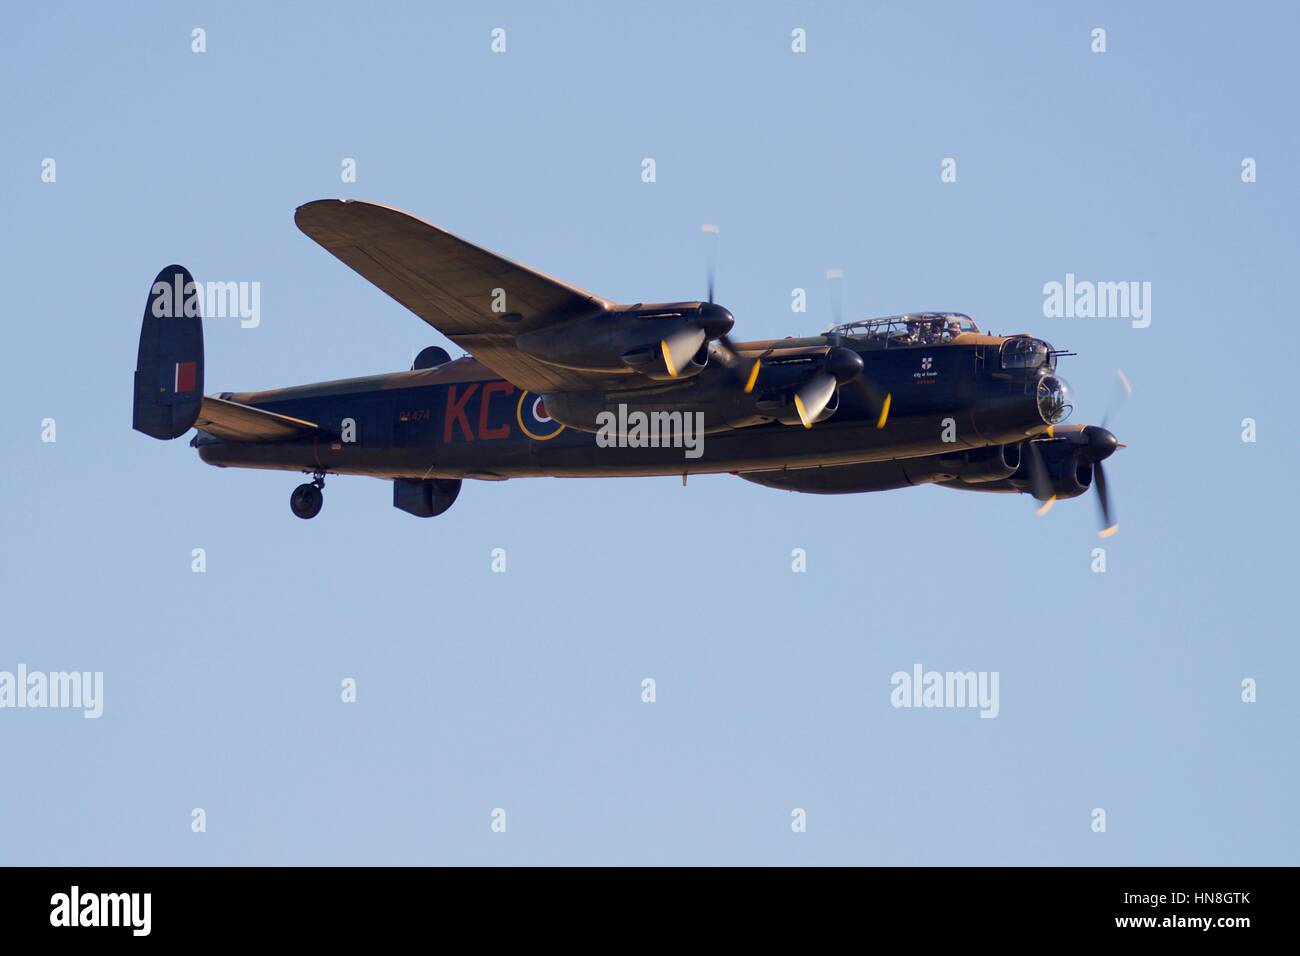 Royal Air Force Avro Lancaster - Stock Image